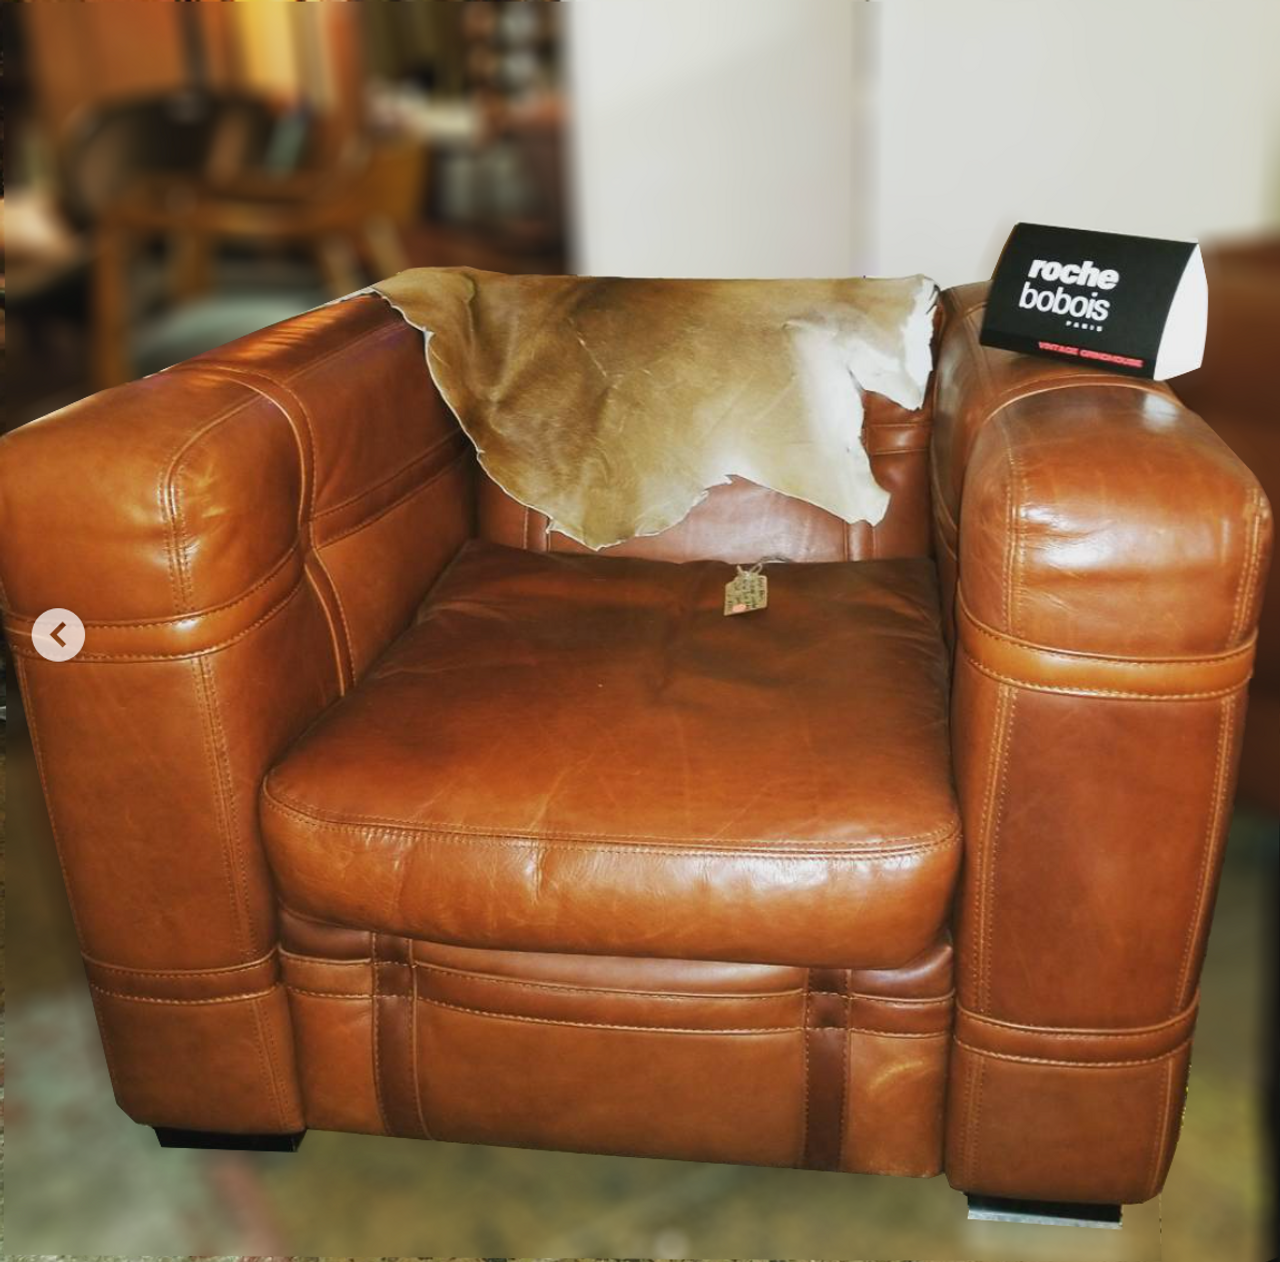 Charmant Pair Of Vintage Roche Bobois Leather Belted Club Chairs